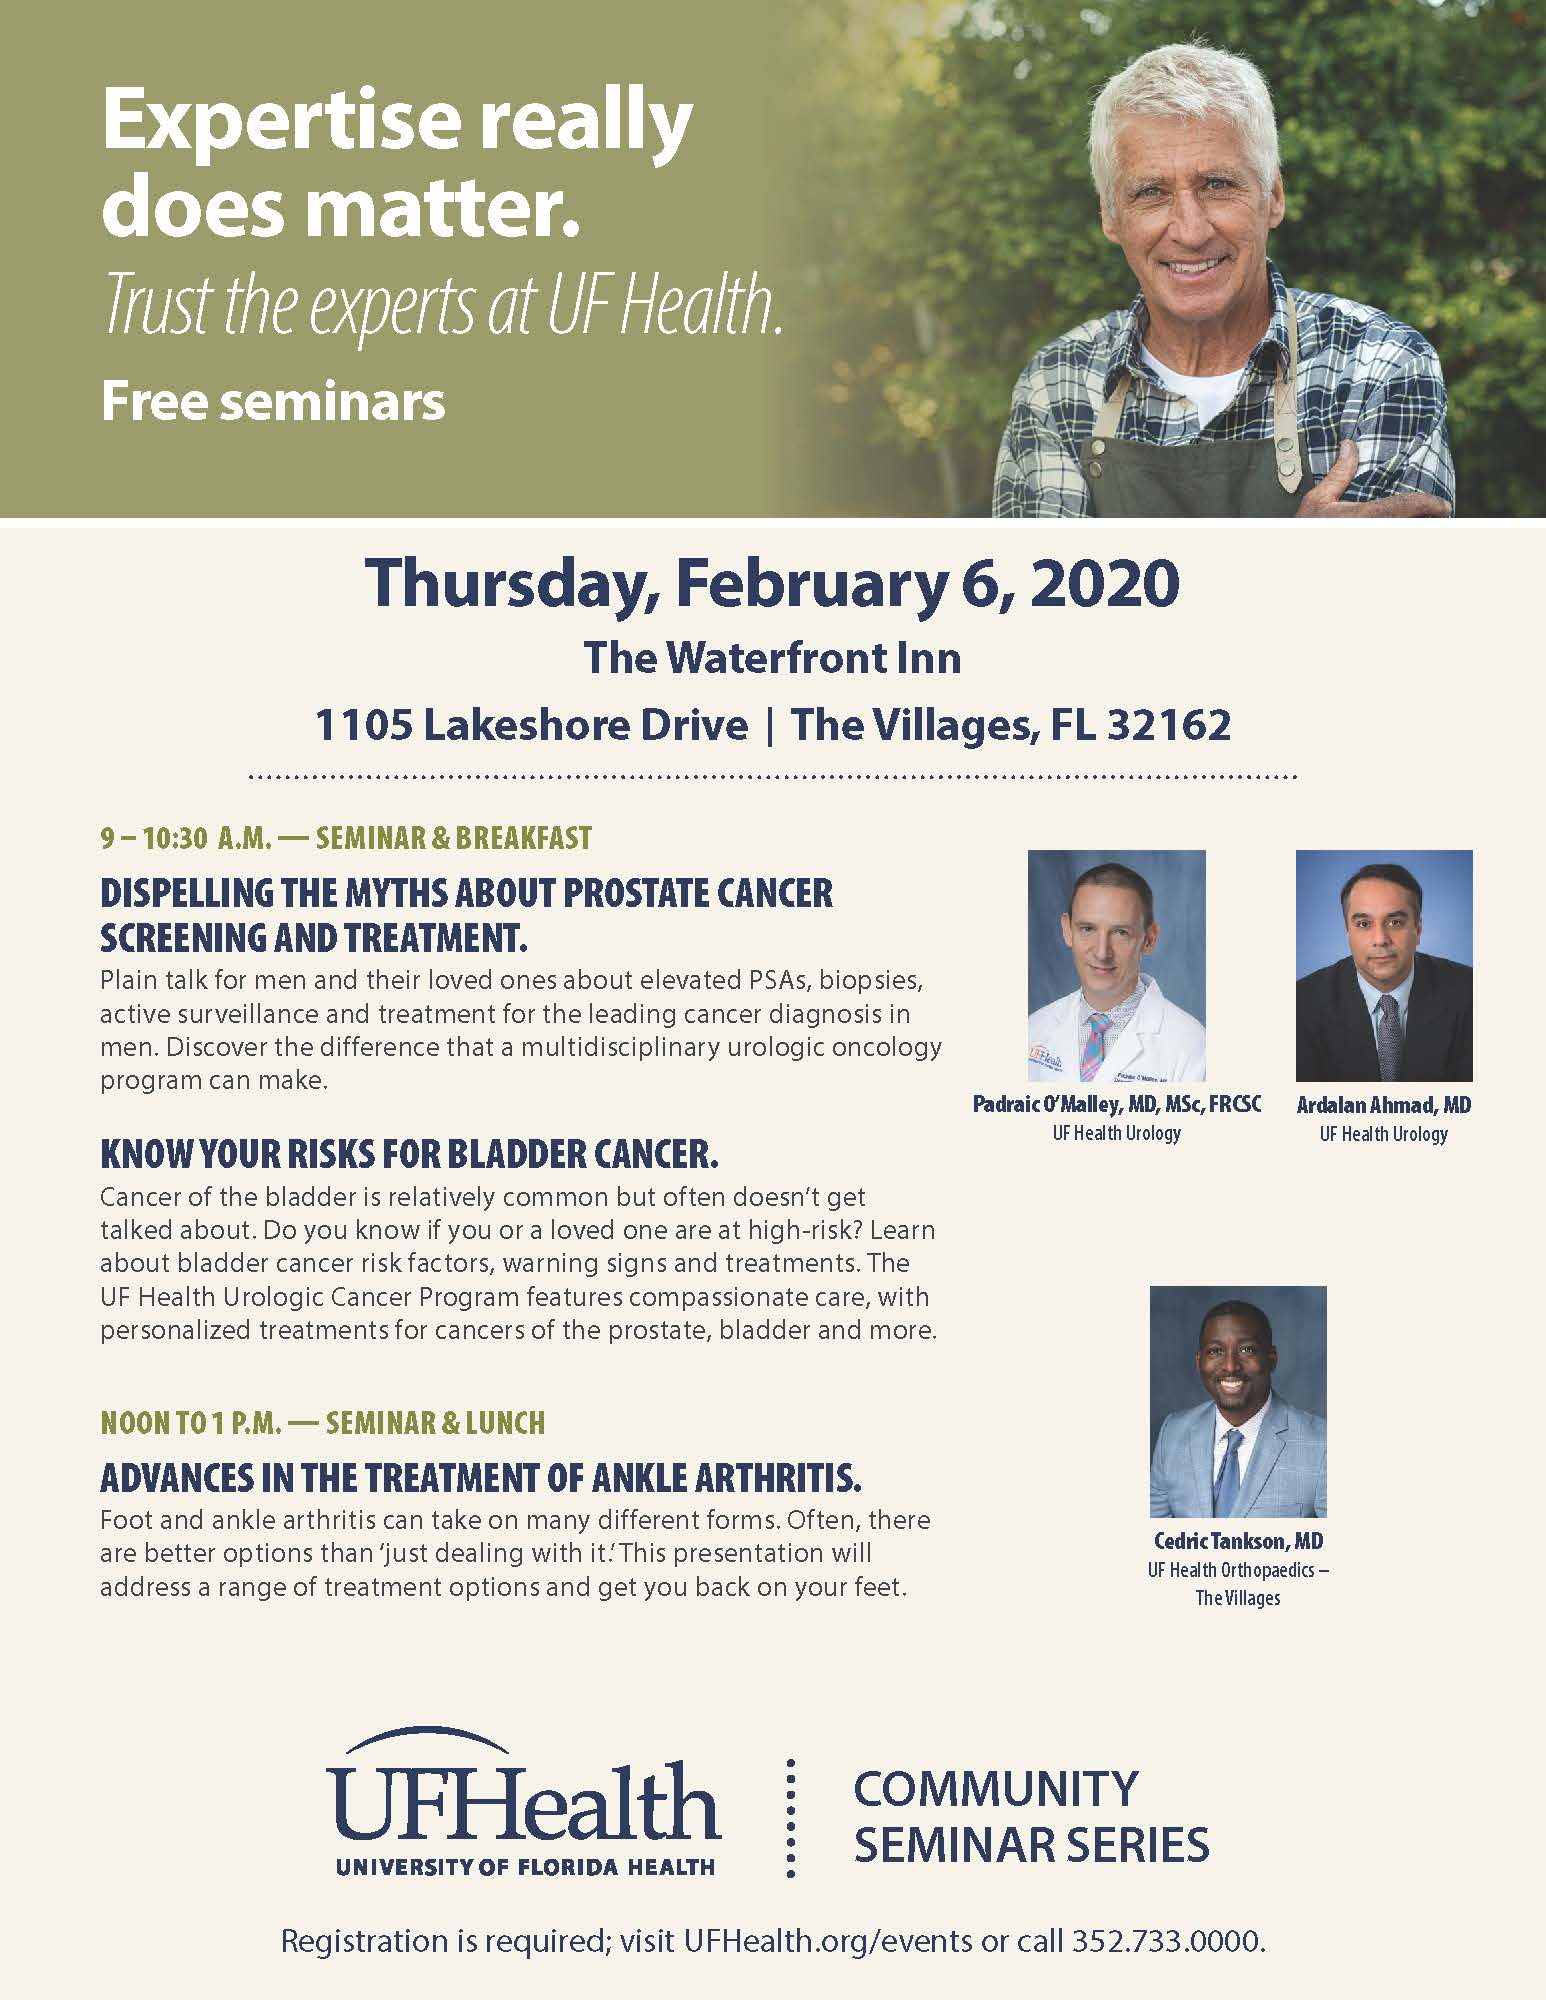 Expertise really does matter.   Trust the experts at UF Health. Free seminars.  Thursday, February 6, 2020 The Waterfront Inn, 1105 Lakeshore Drive, The Villages, FL 32162.    9 – 10:30 A.M. — SEMINAR & BREAKFAST DISPELLING THE MYTHS ABOUT PROSTATE CANCER SCREENING AND TREATMENT. Plain talk for men and their loved ones about elevated PSAs, biopsies, active surveillance and treatment for the leading cancer diagnosis in men. Discover the difference that a multidisciplinary urologic oncology program can make. KNOW YOUR RISKS FOR BLADDER CANCER. Cancer of the bladder is relatively common but often doesn't get talked about. Do you know if you or a loved one are at high-risk? Learn about bladder cancer risk factors, warning signs and treatments. The UF Health Urologic Cancer Program features compassionate care, with personalized treatments for cancers of the prostate, bladder and more. NOON TO 1 P.M. — SEMINAR & LUNCH ADVANCES IN THE TREATMENT OF ANKLE ARTHRITIS. Foot and ankle arthritis can take on many different forms. Often, there are better options than 'just dealing with it.' This presentation will address a range of treatment options and get you back on your feet.